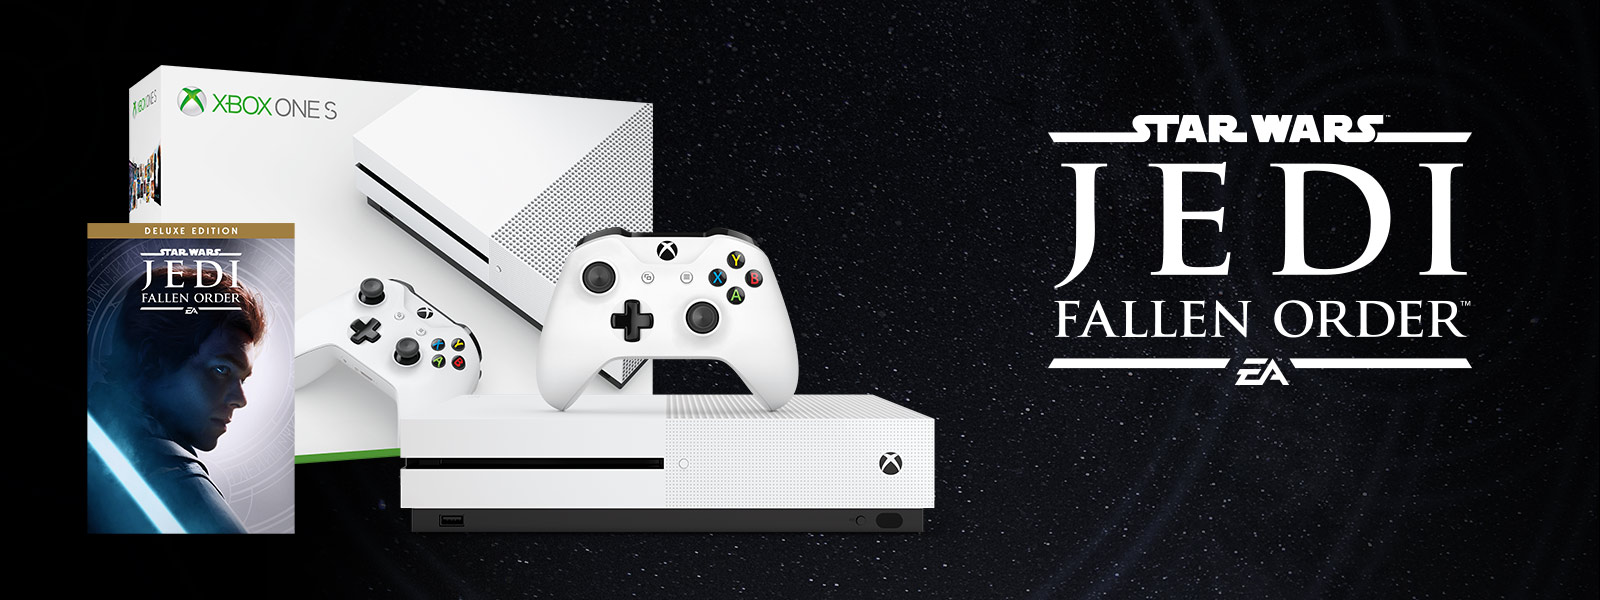 Xbox One S Star Wars Jedi: Fallen Order bundle art in front of mountains and a road with leaves